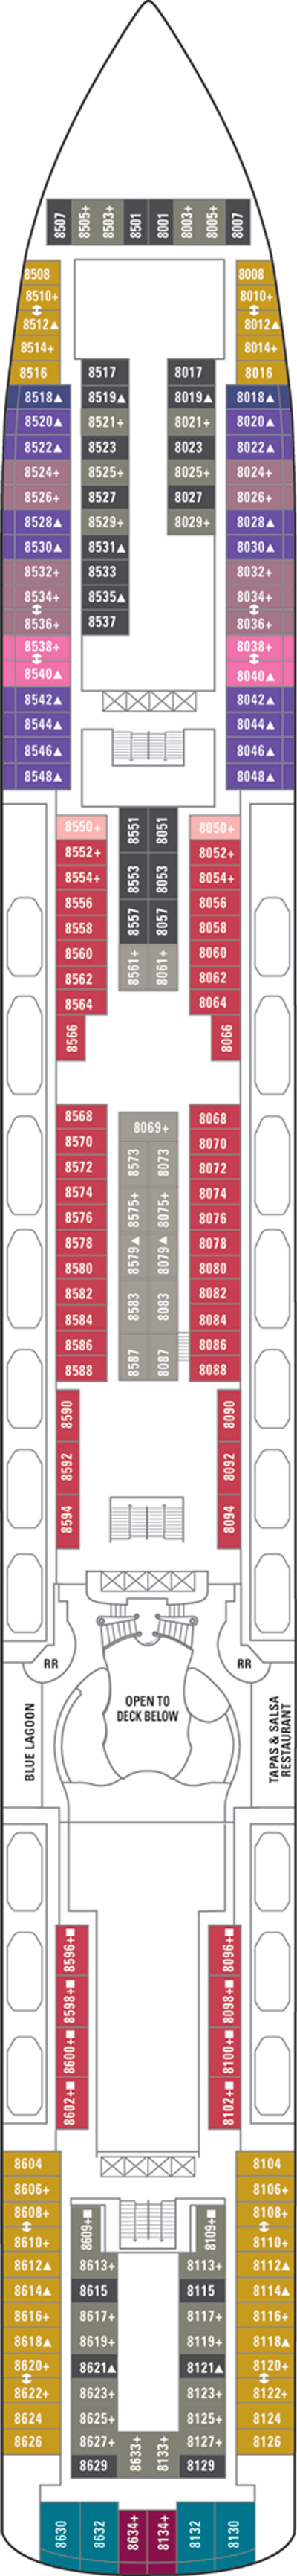 Norwegian Jade Deck 8 layout